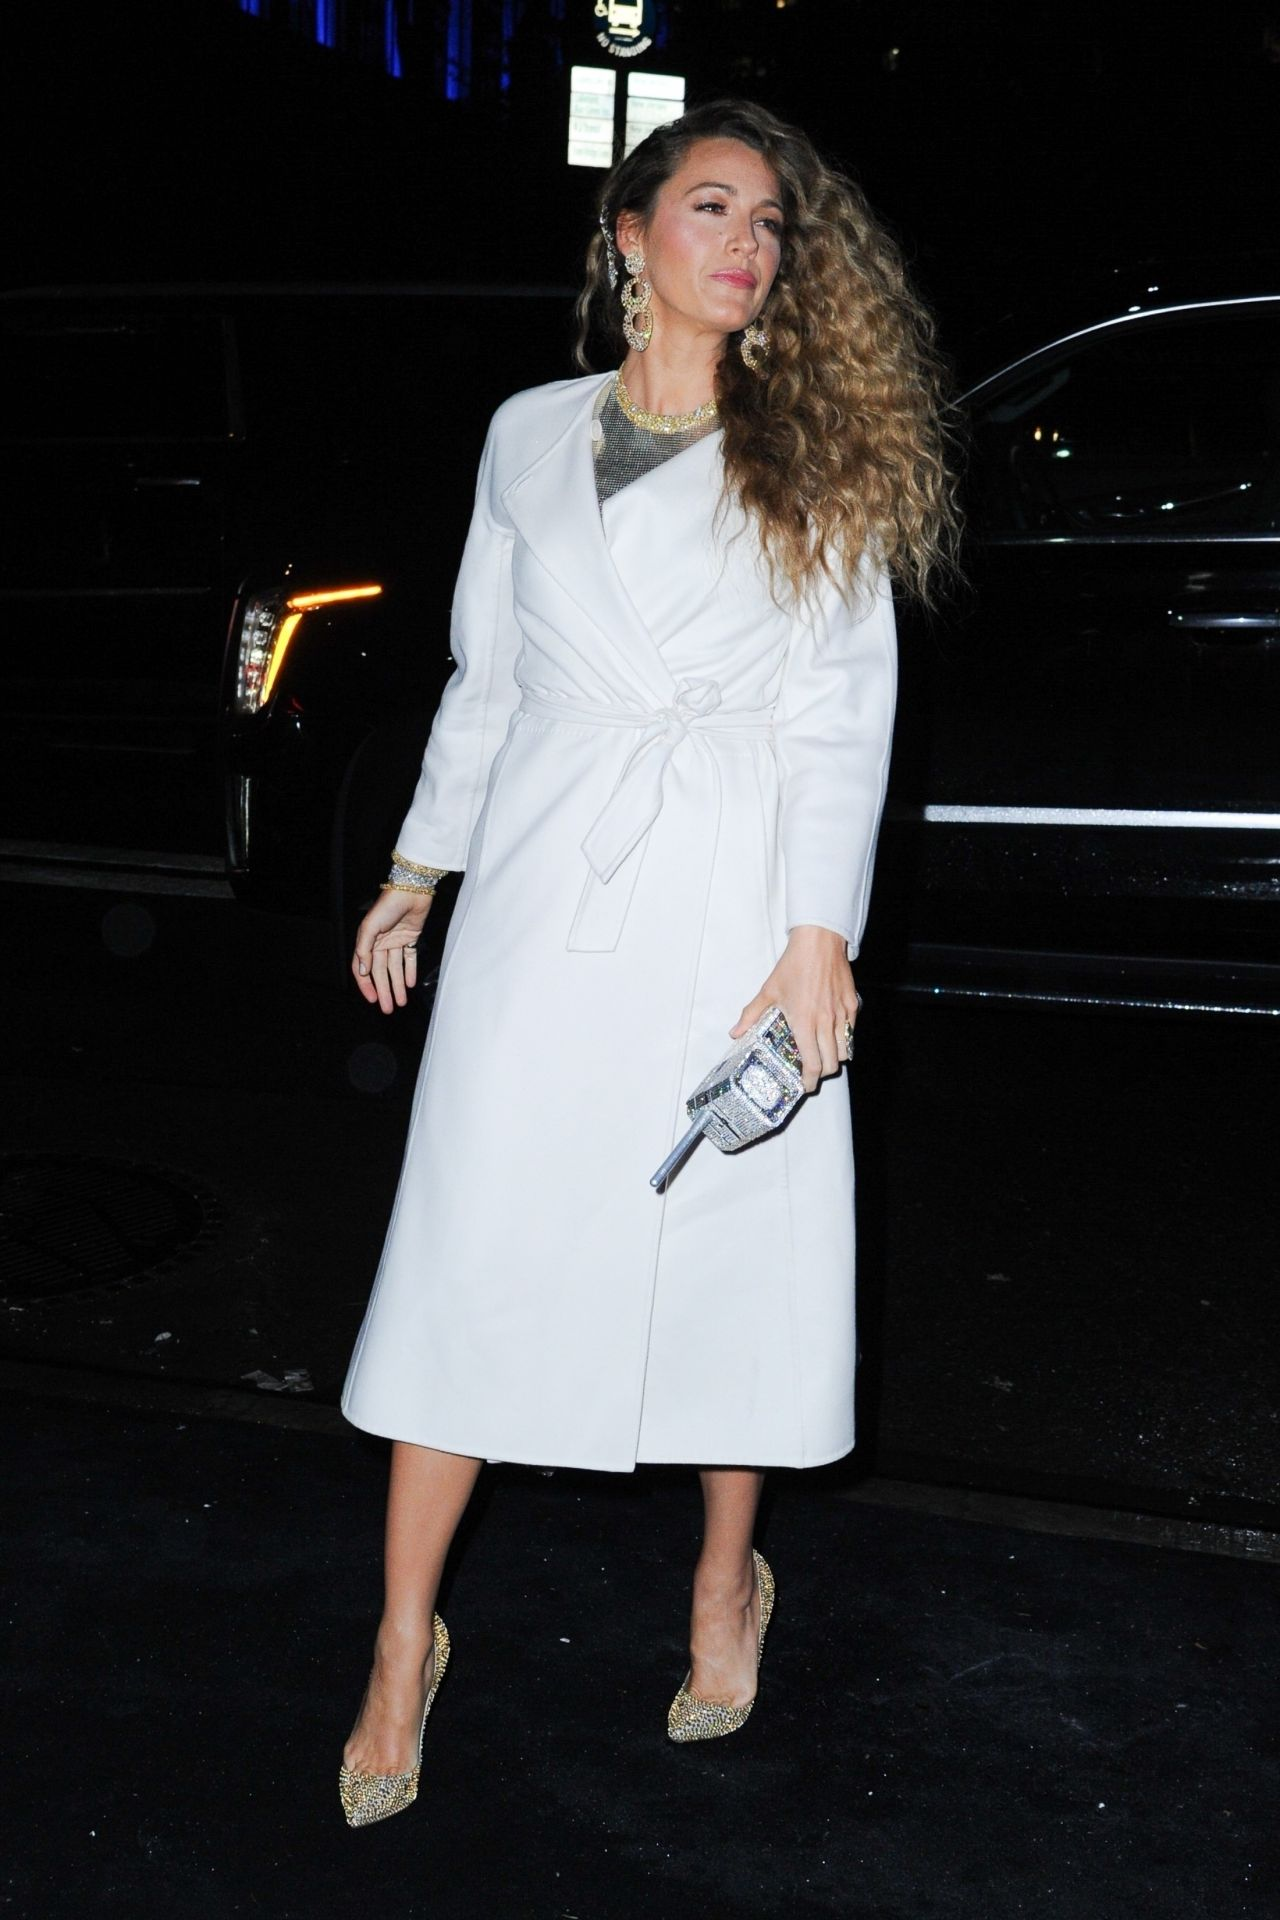 Blake Lively Arriving To The Versace Pre Fall 2019